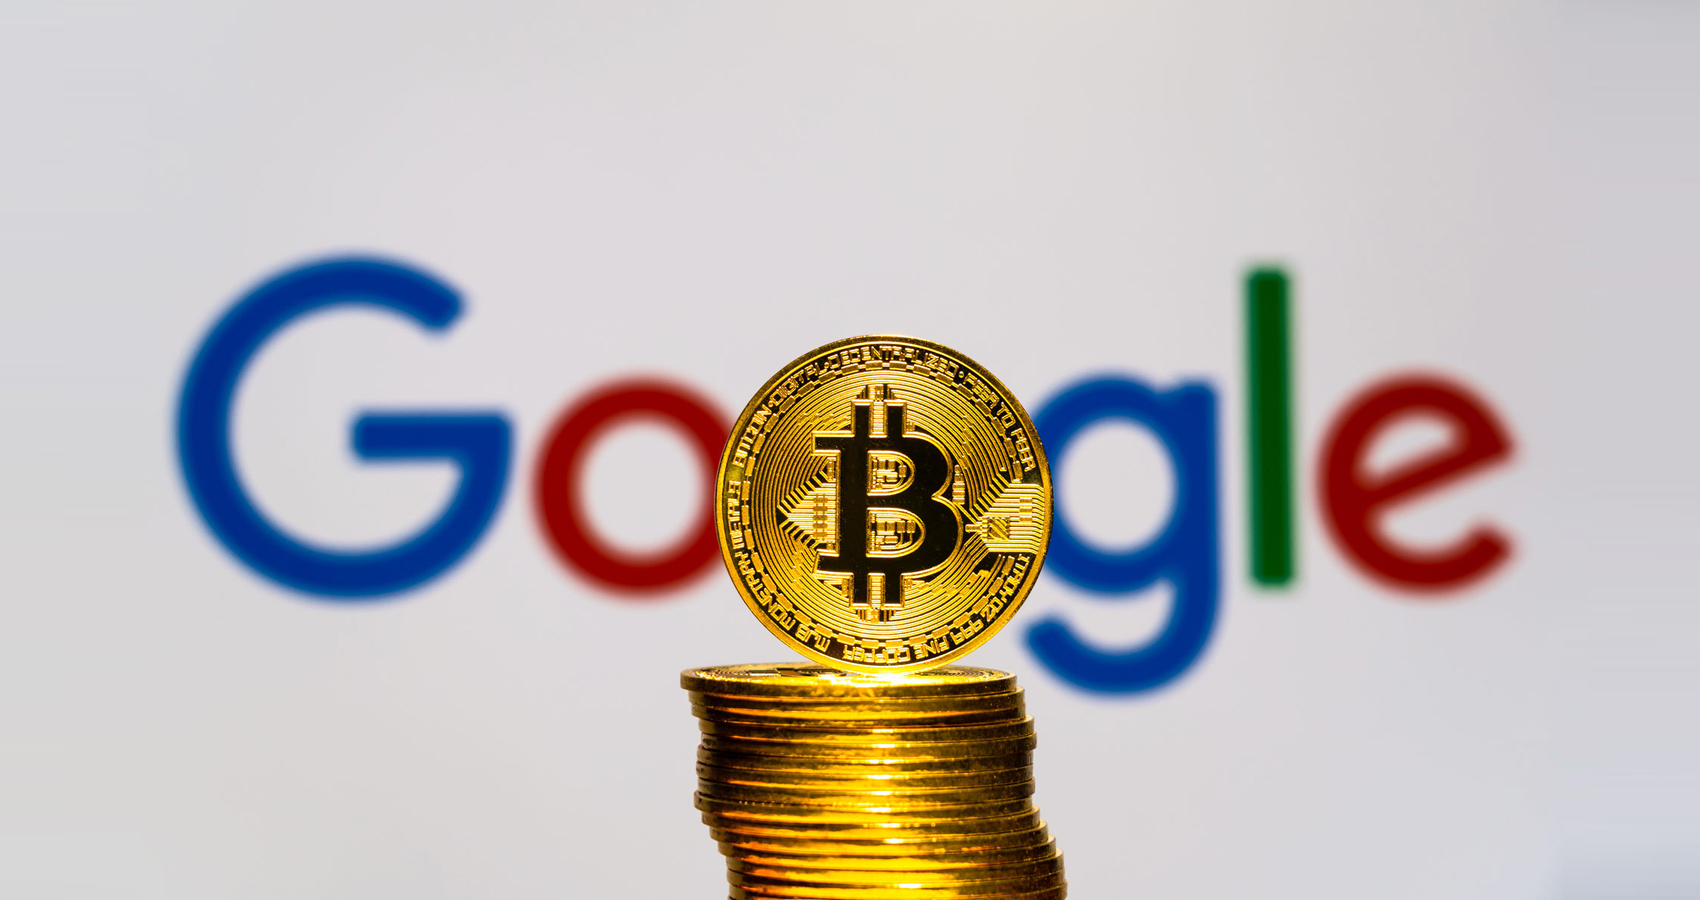 Google has set new guidelines for cryptographic ads